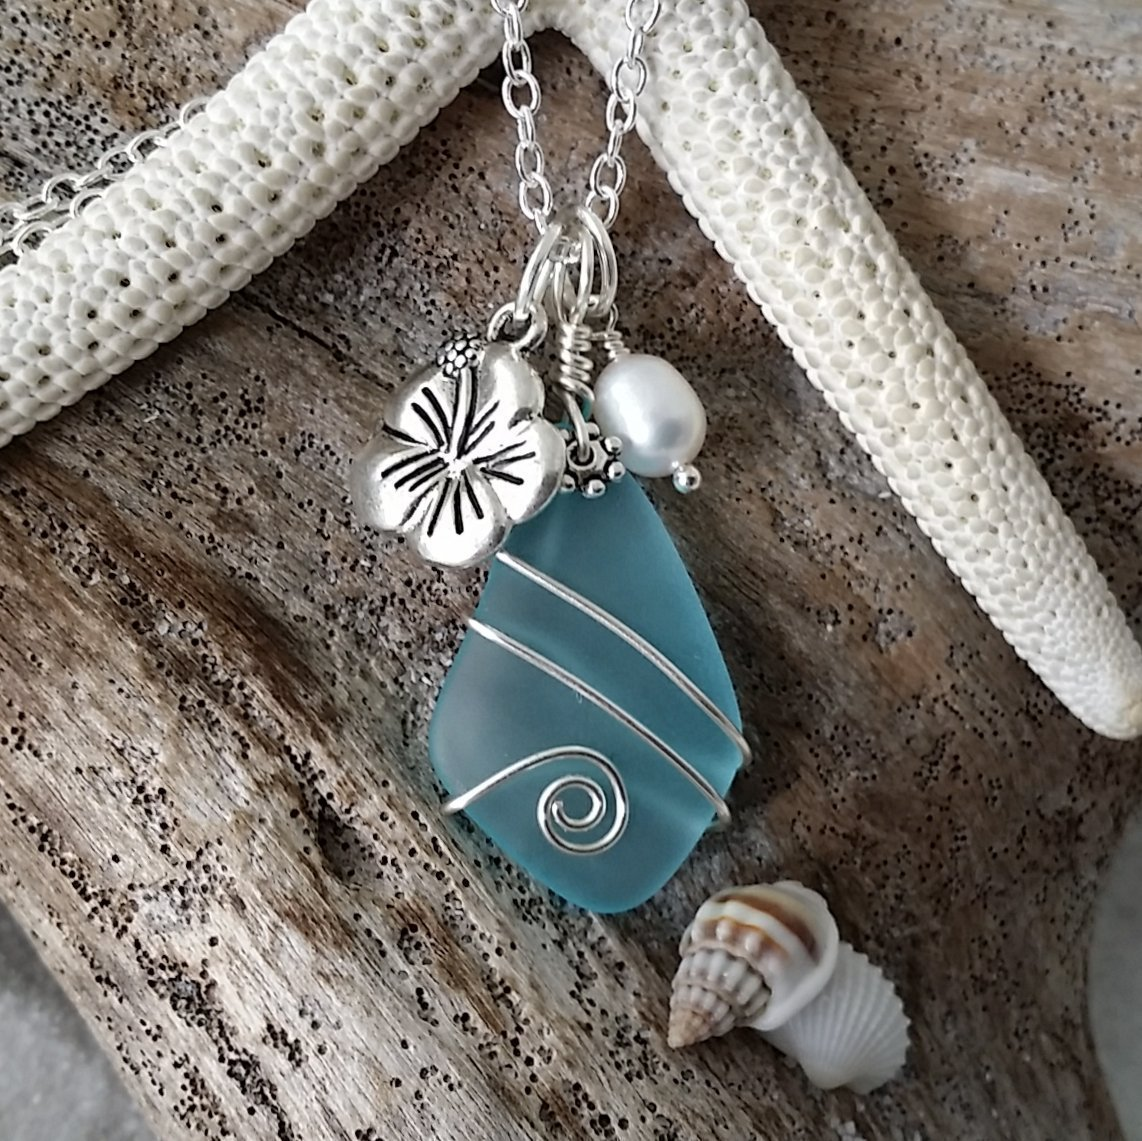 Handmade in Hawaii, wire wrapped blue sea glass necklace, Hawaiian state flower Hibiscus and freshwater pearl, sterling silver chain, Mother's Day Gift, FREE gift wrap, FREE gift message